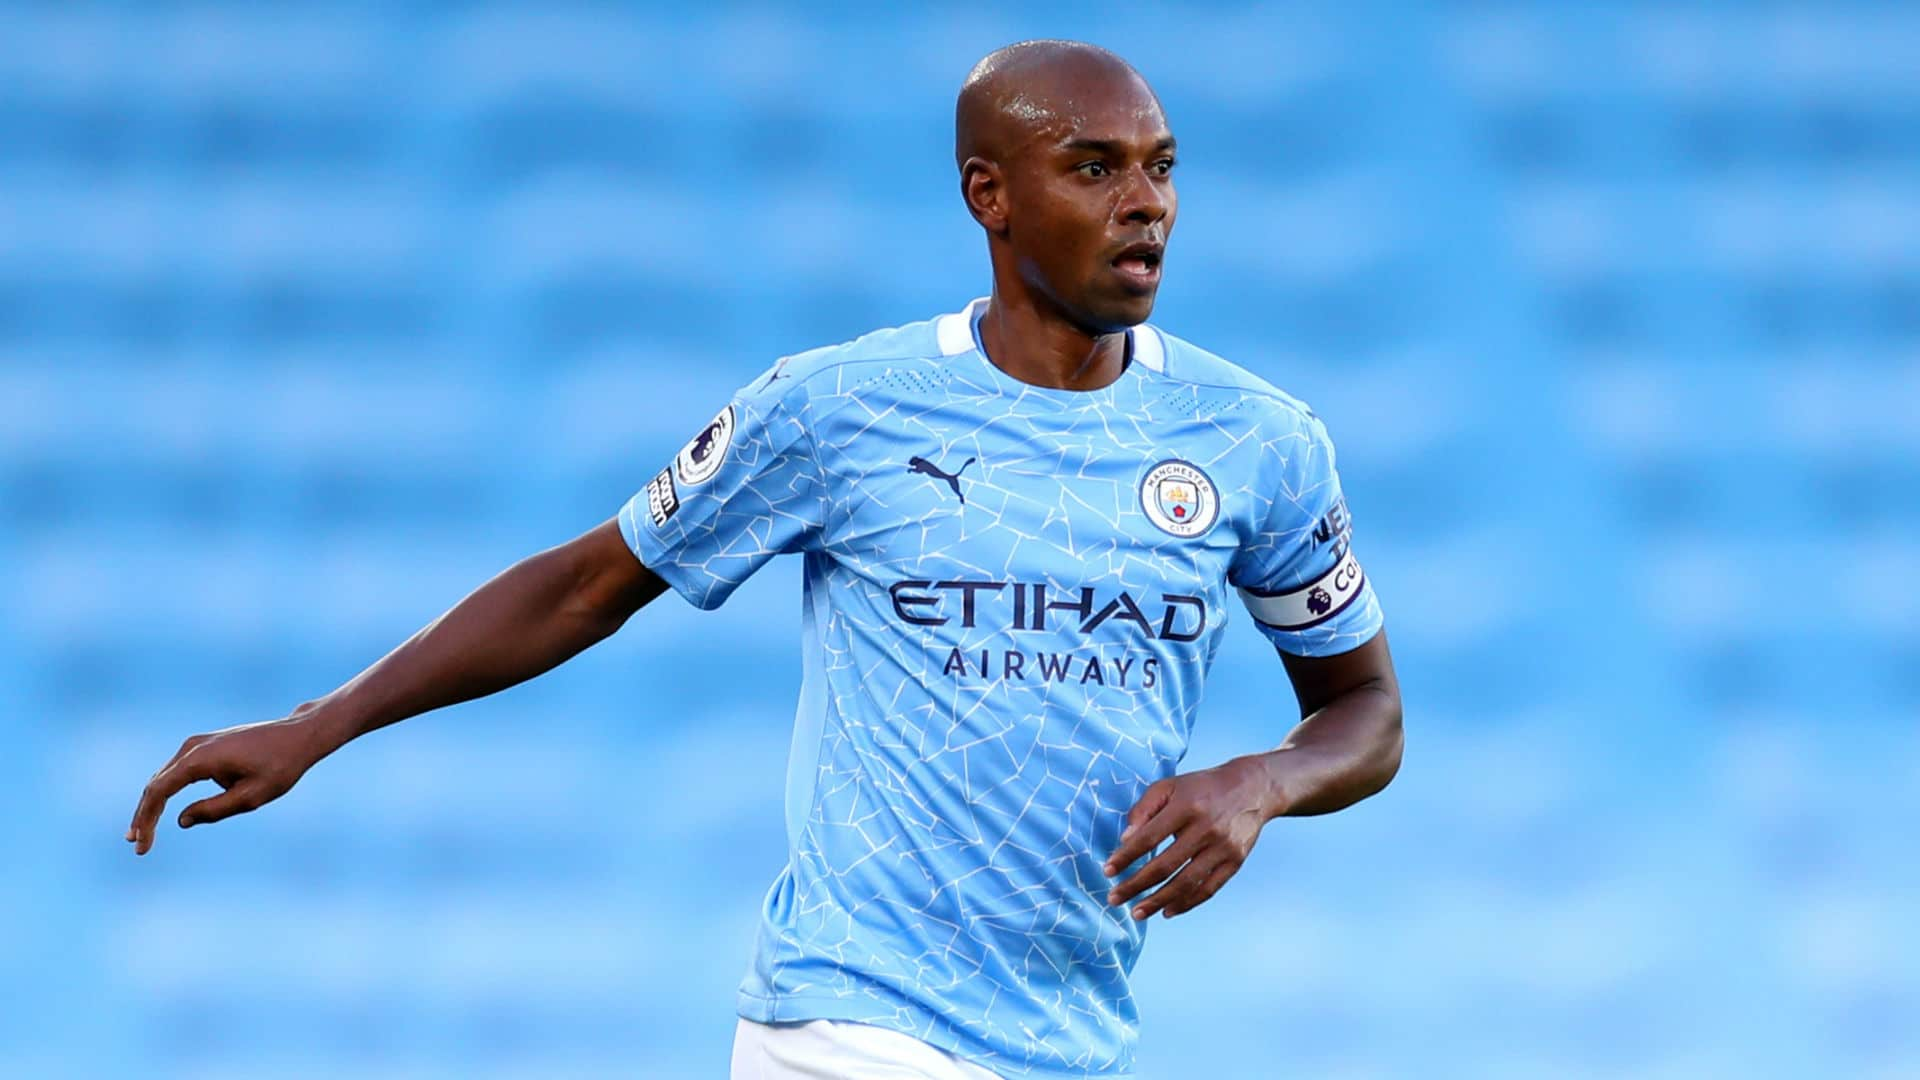 fernandinho-important-from-day-one-for-guardiola-as-manchester-city-captain-justifies-cameo-impact.jpg